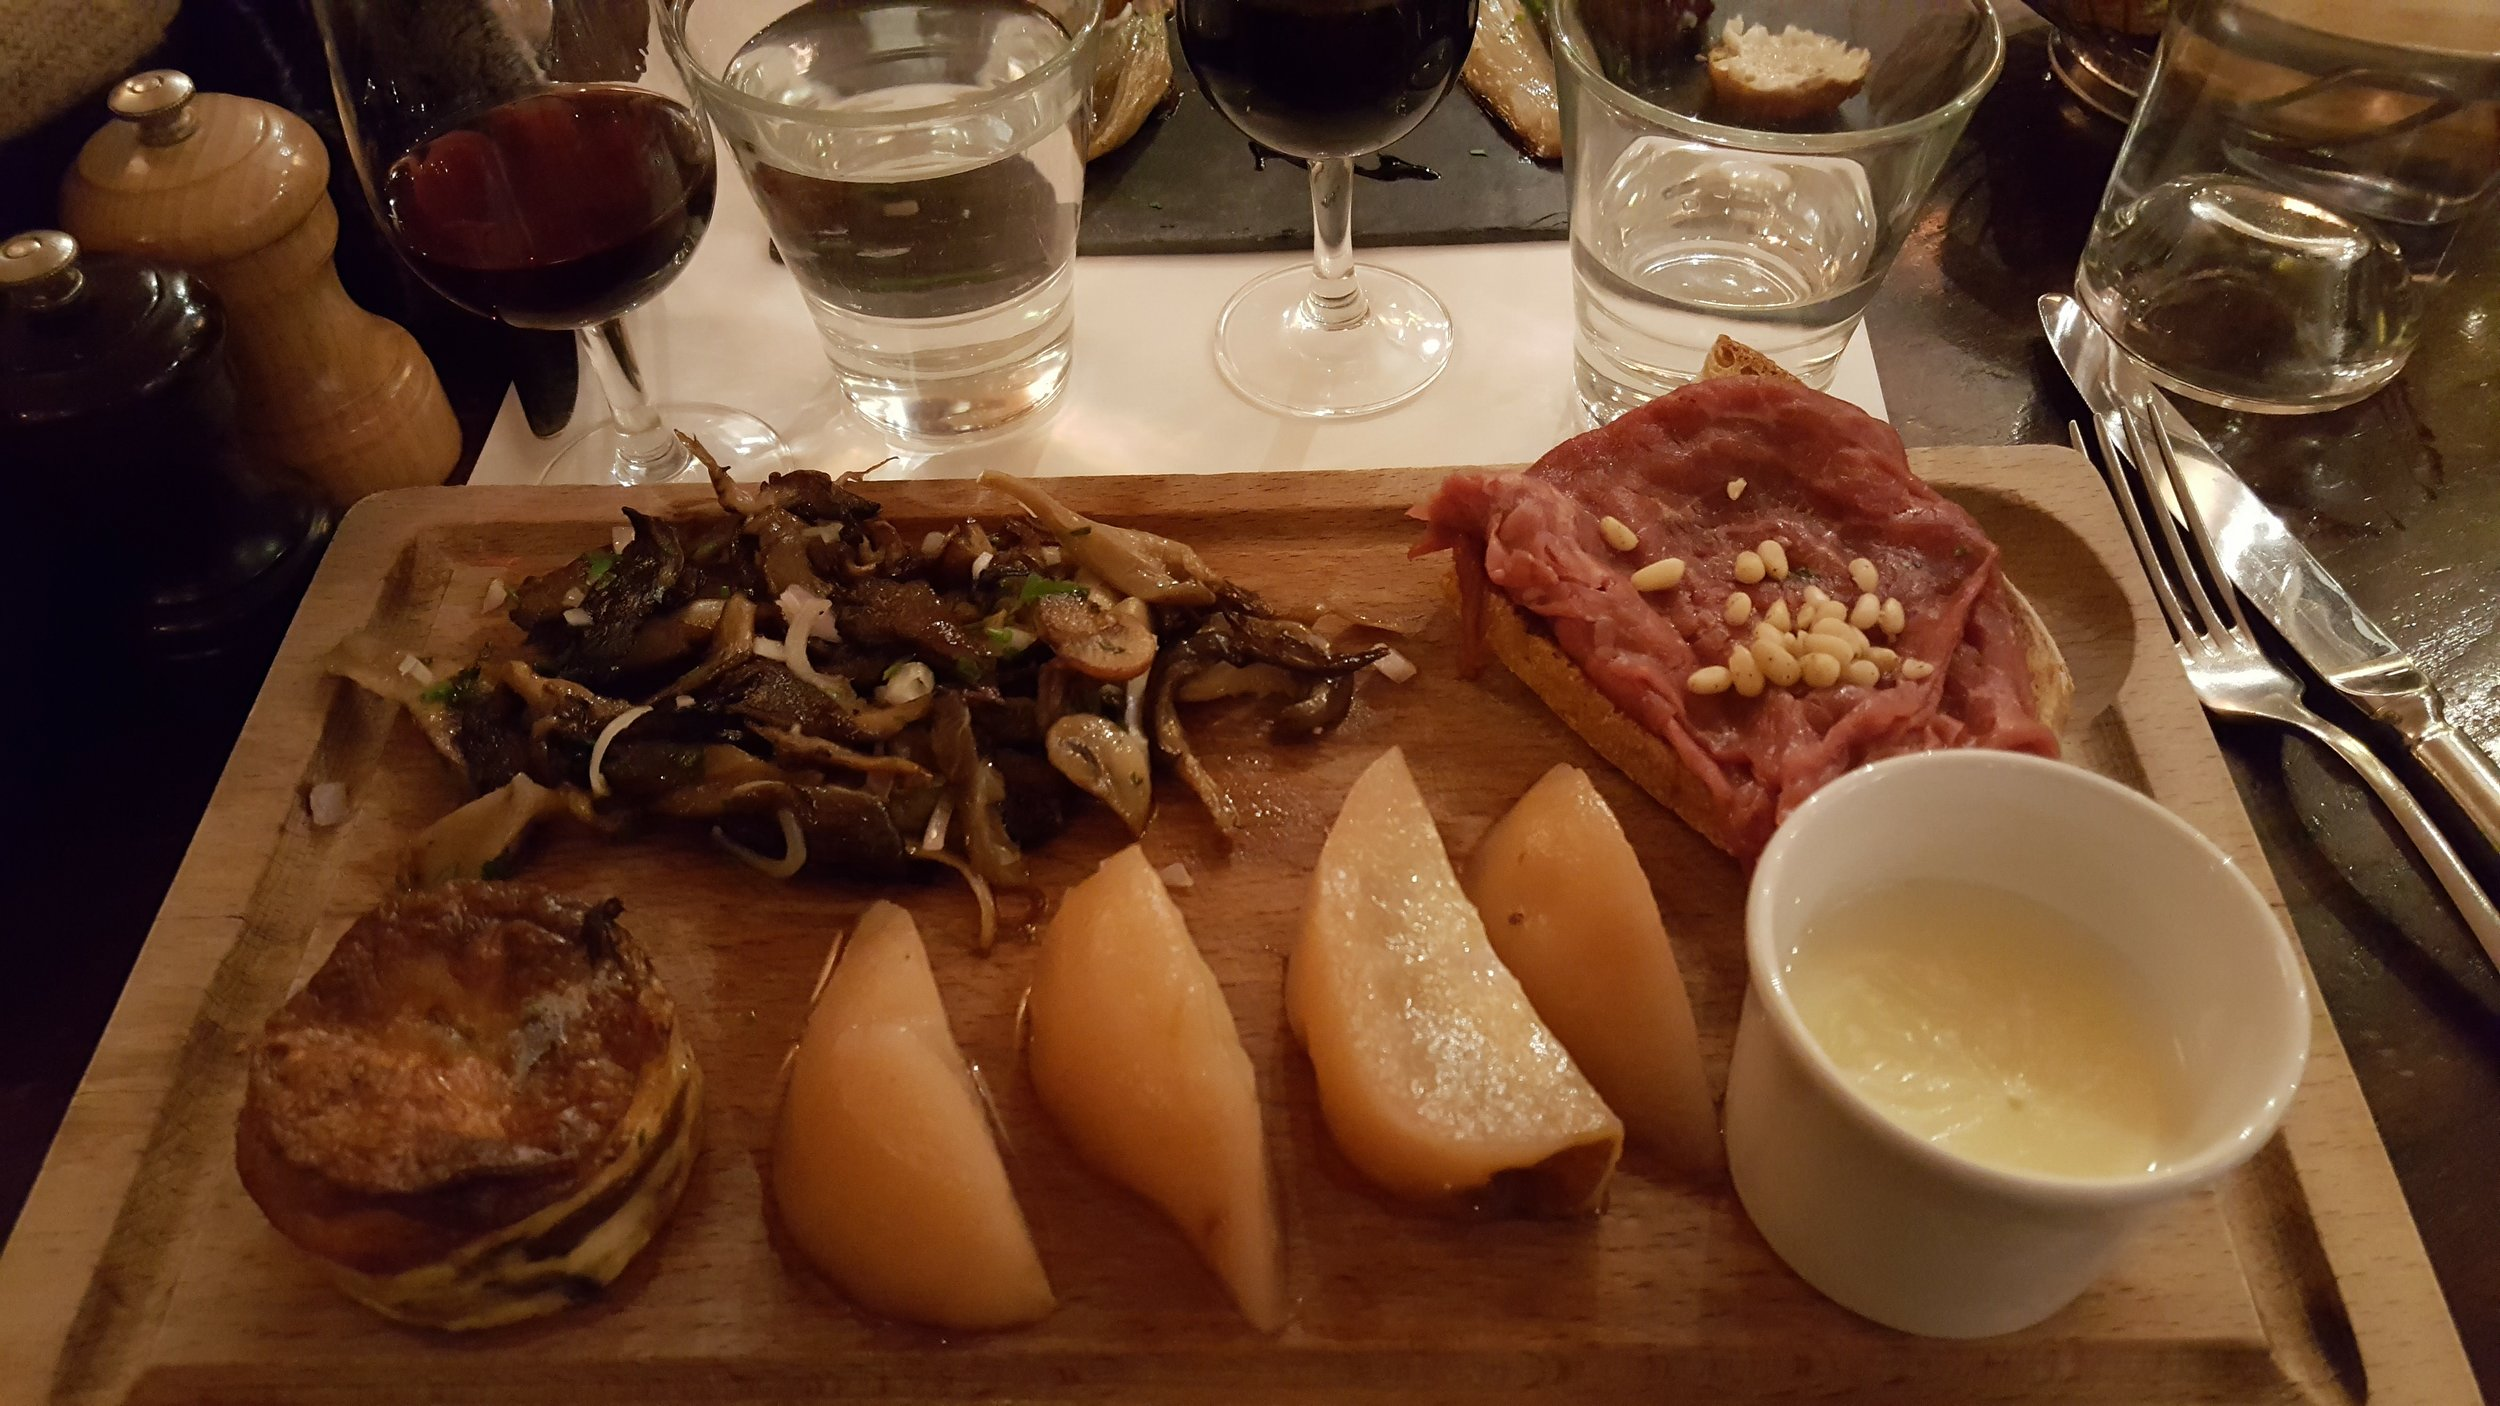 Meatboard with mushrooms and pears